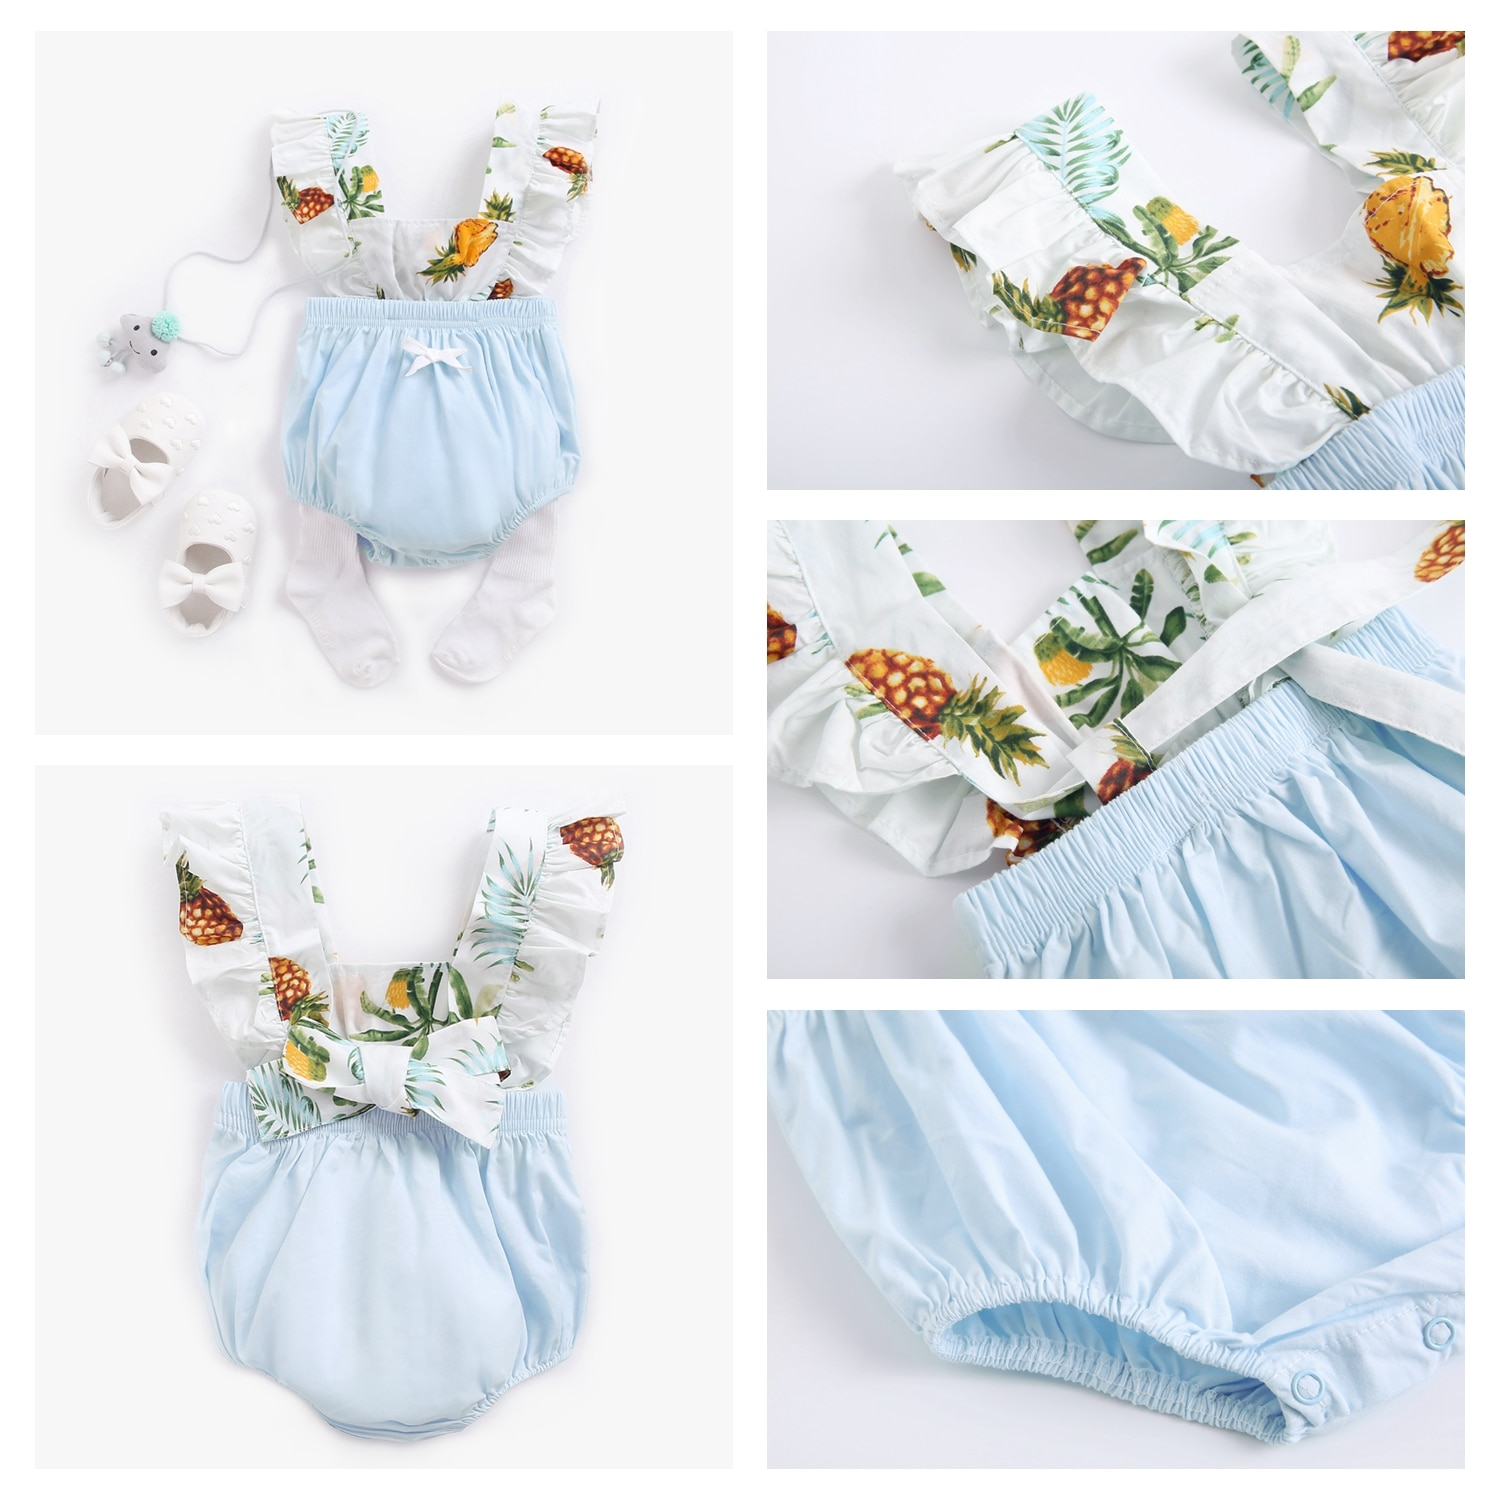 Sanlutoz Flowers Baby Girls Rompers Summer Clothes for Baby Girl Princess Cotton Toddler Infant Clothing Cute